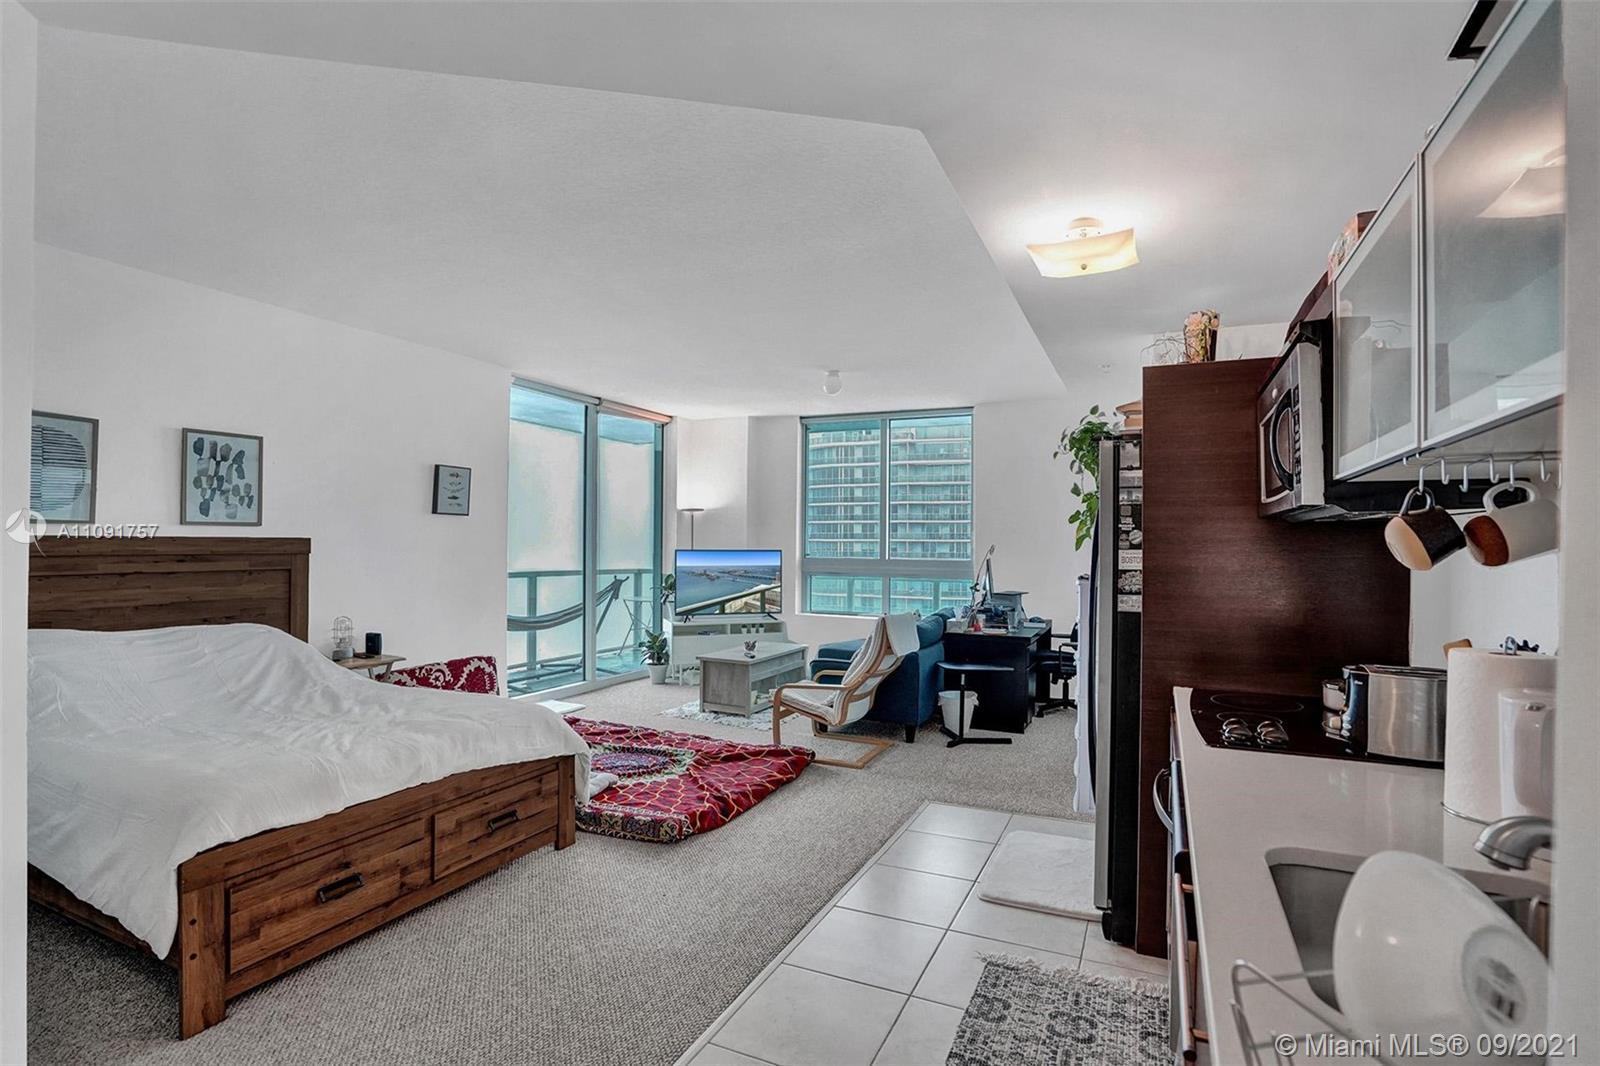 Stunning BAY VIEWs from the 47th floor with an extra-large balcony for this corner unit.  Impact win